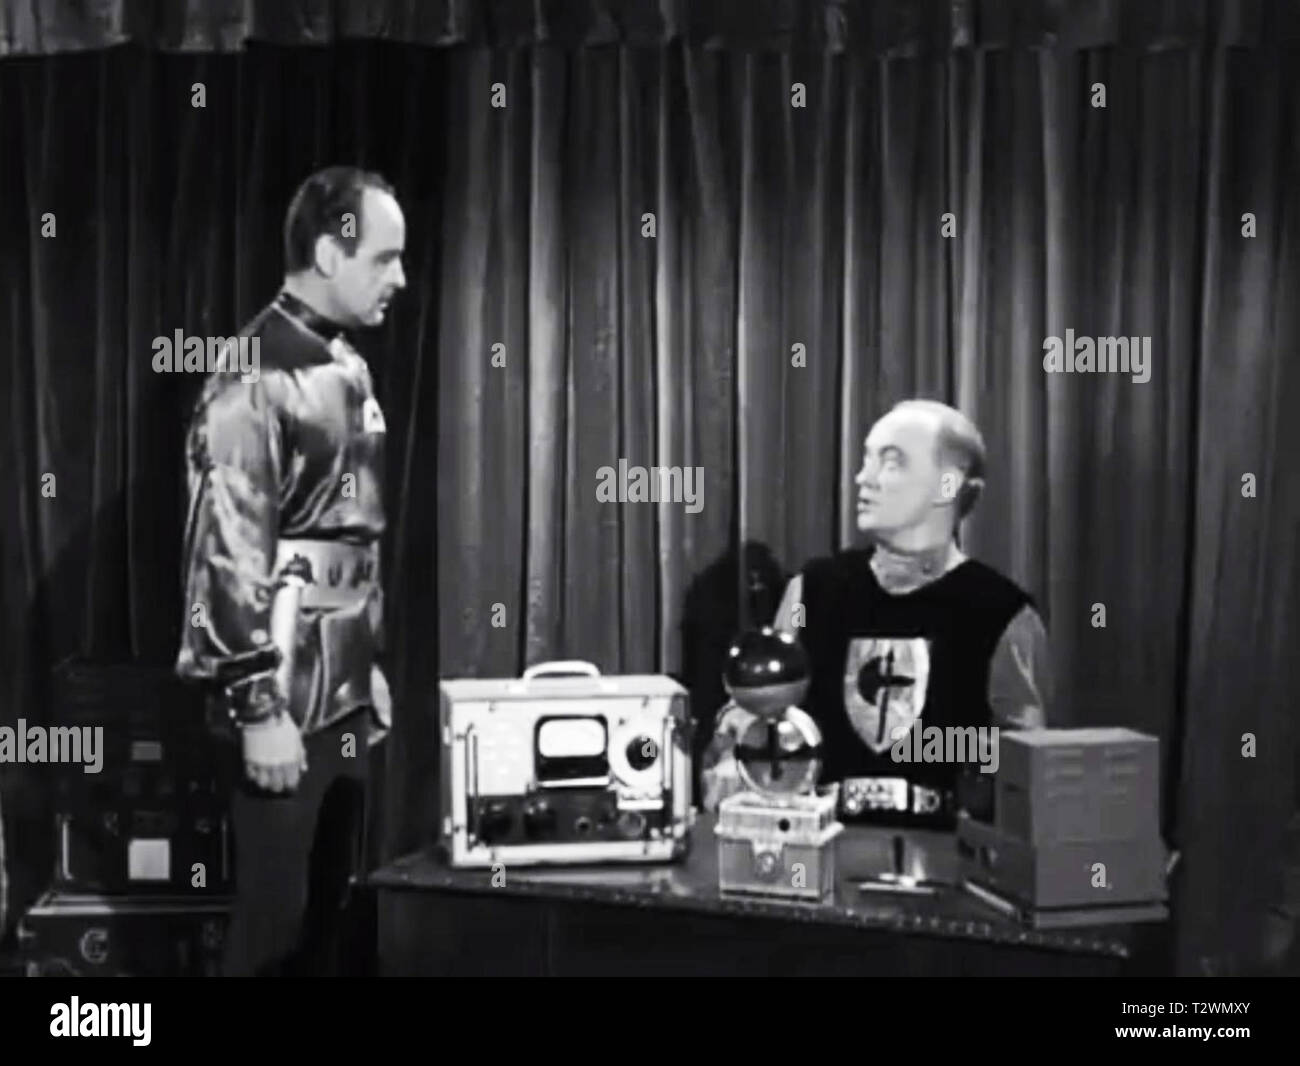 Screenshot of the Aliens from Plan 9 From outer Space - Stock Image